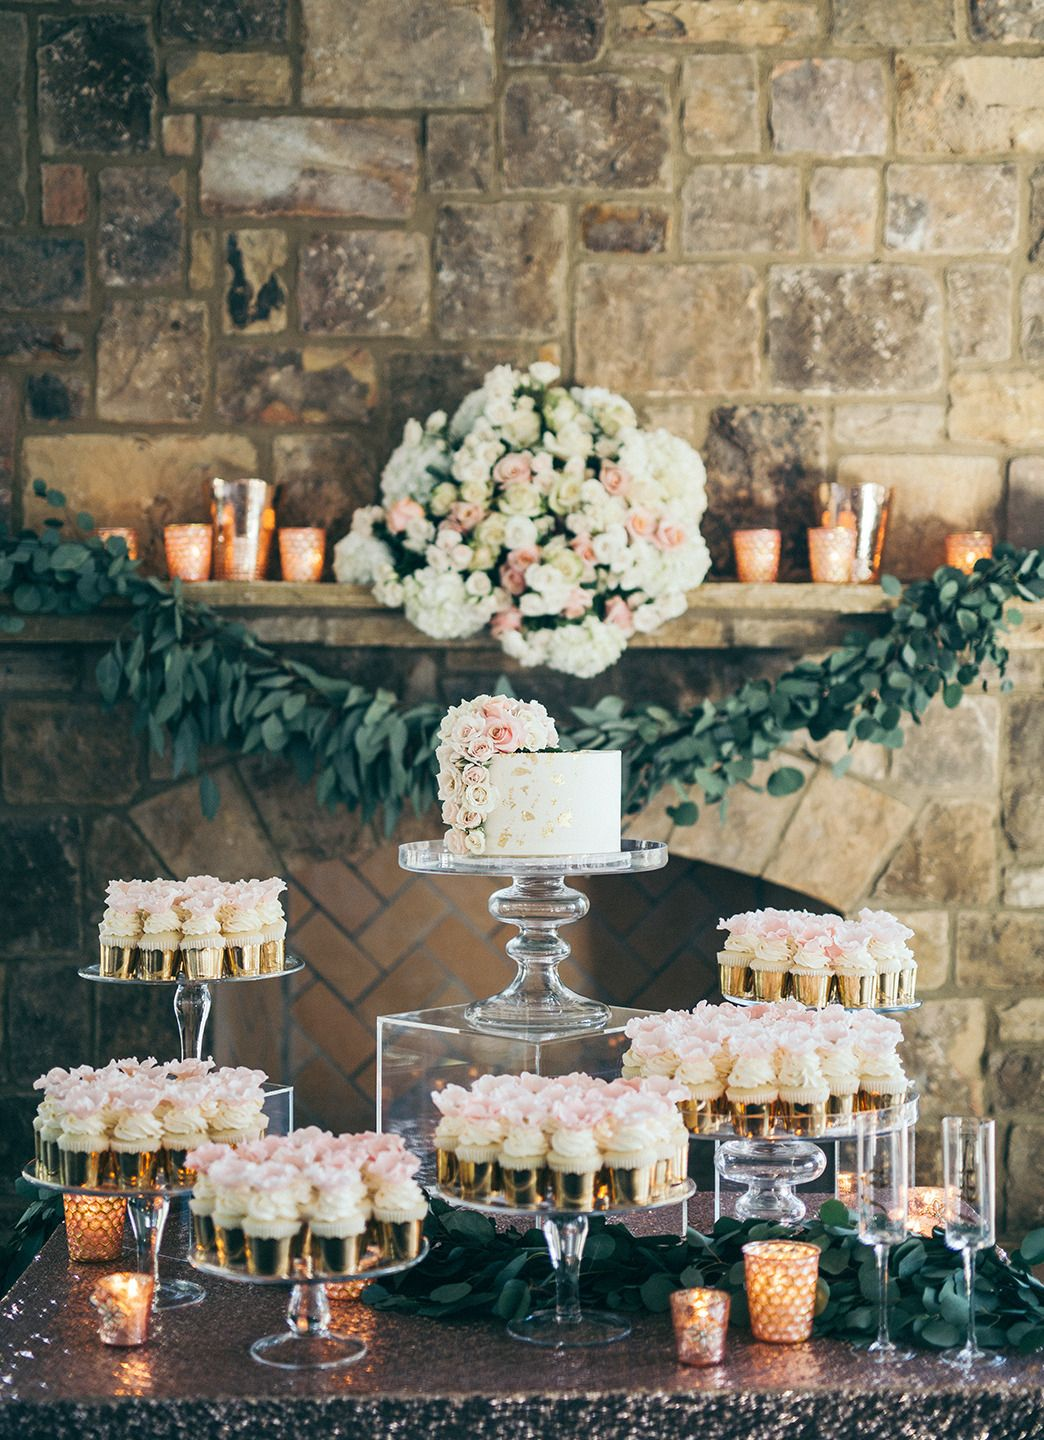 food and dessert table display ideas with acrylic